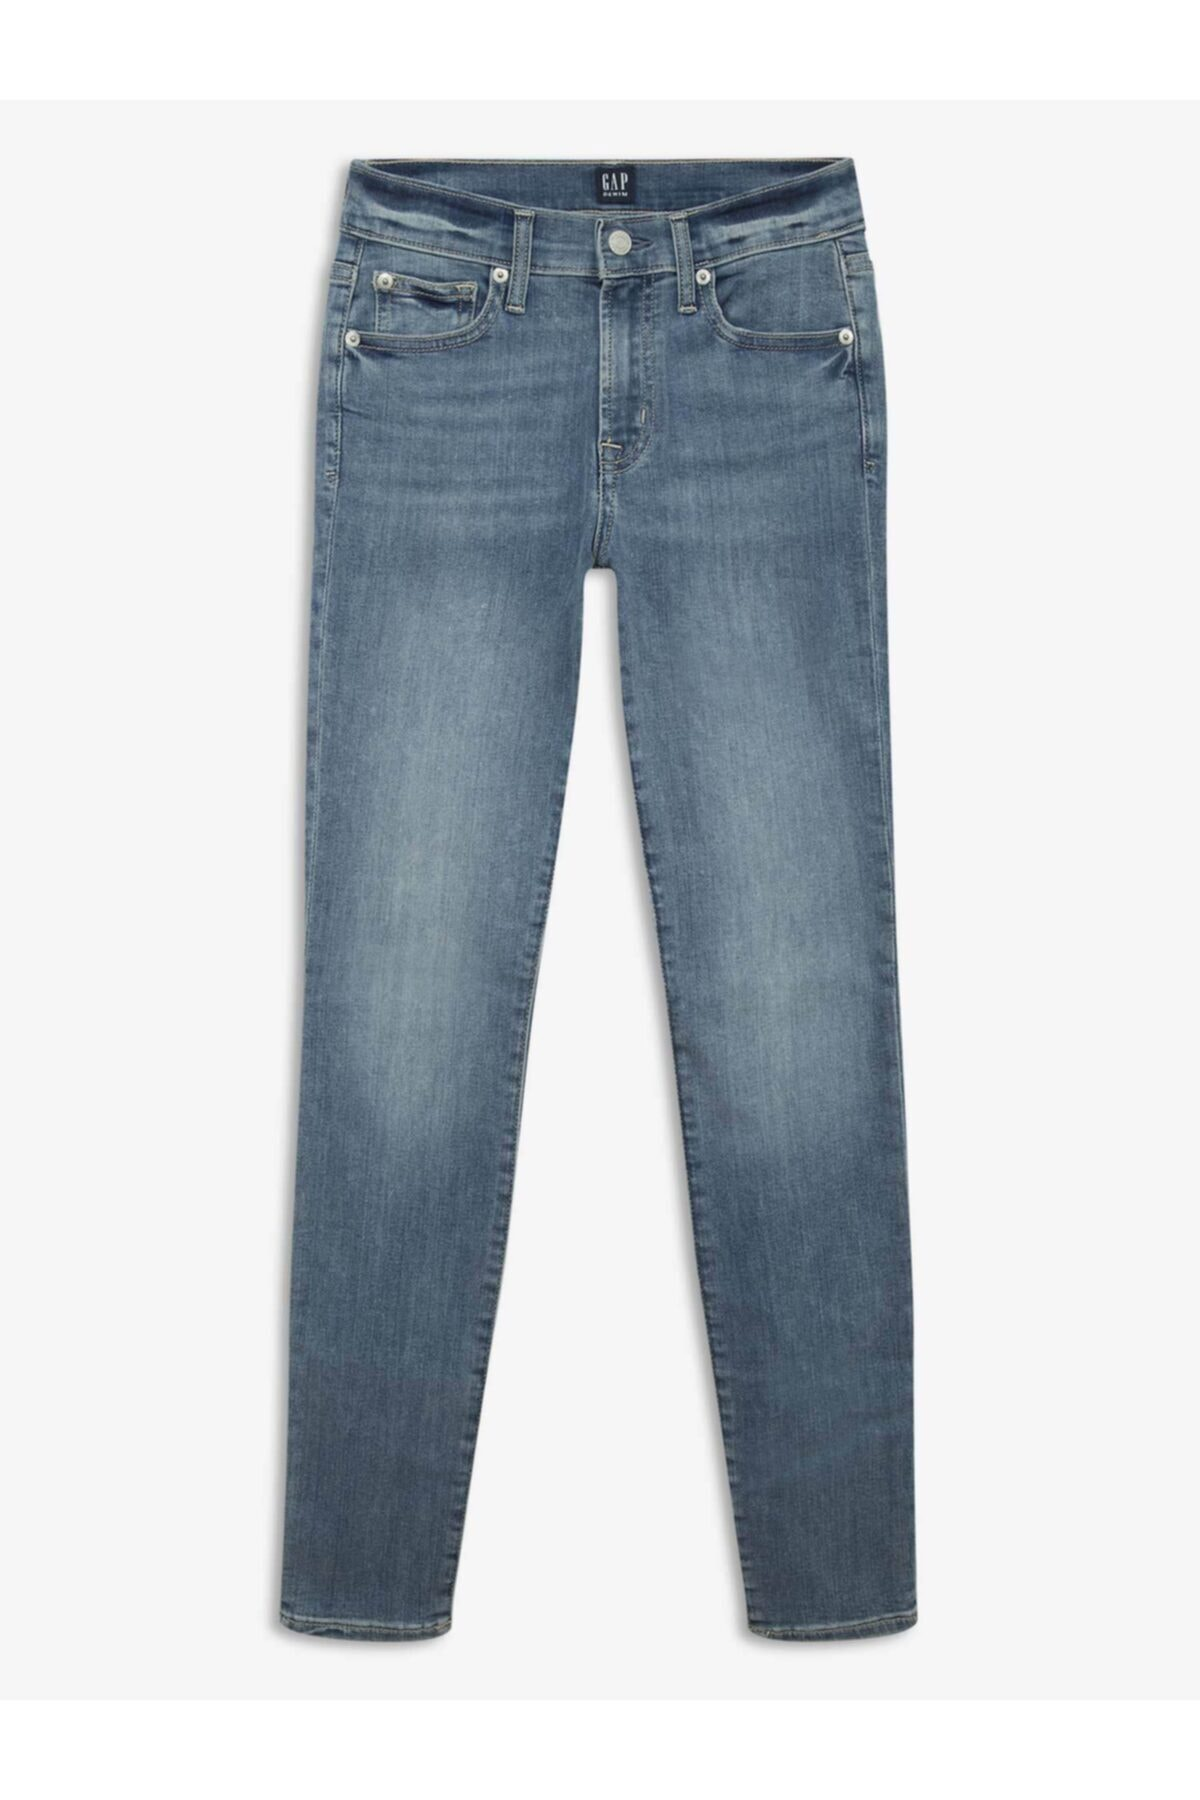 GAP True Skinny Ankle Jean Pantolon 1